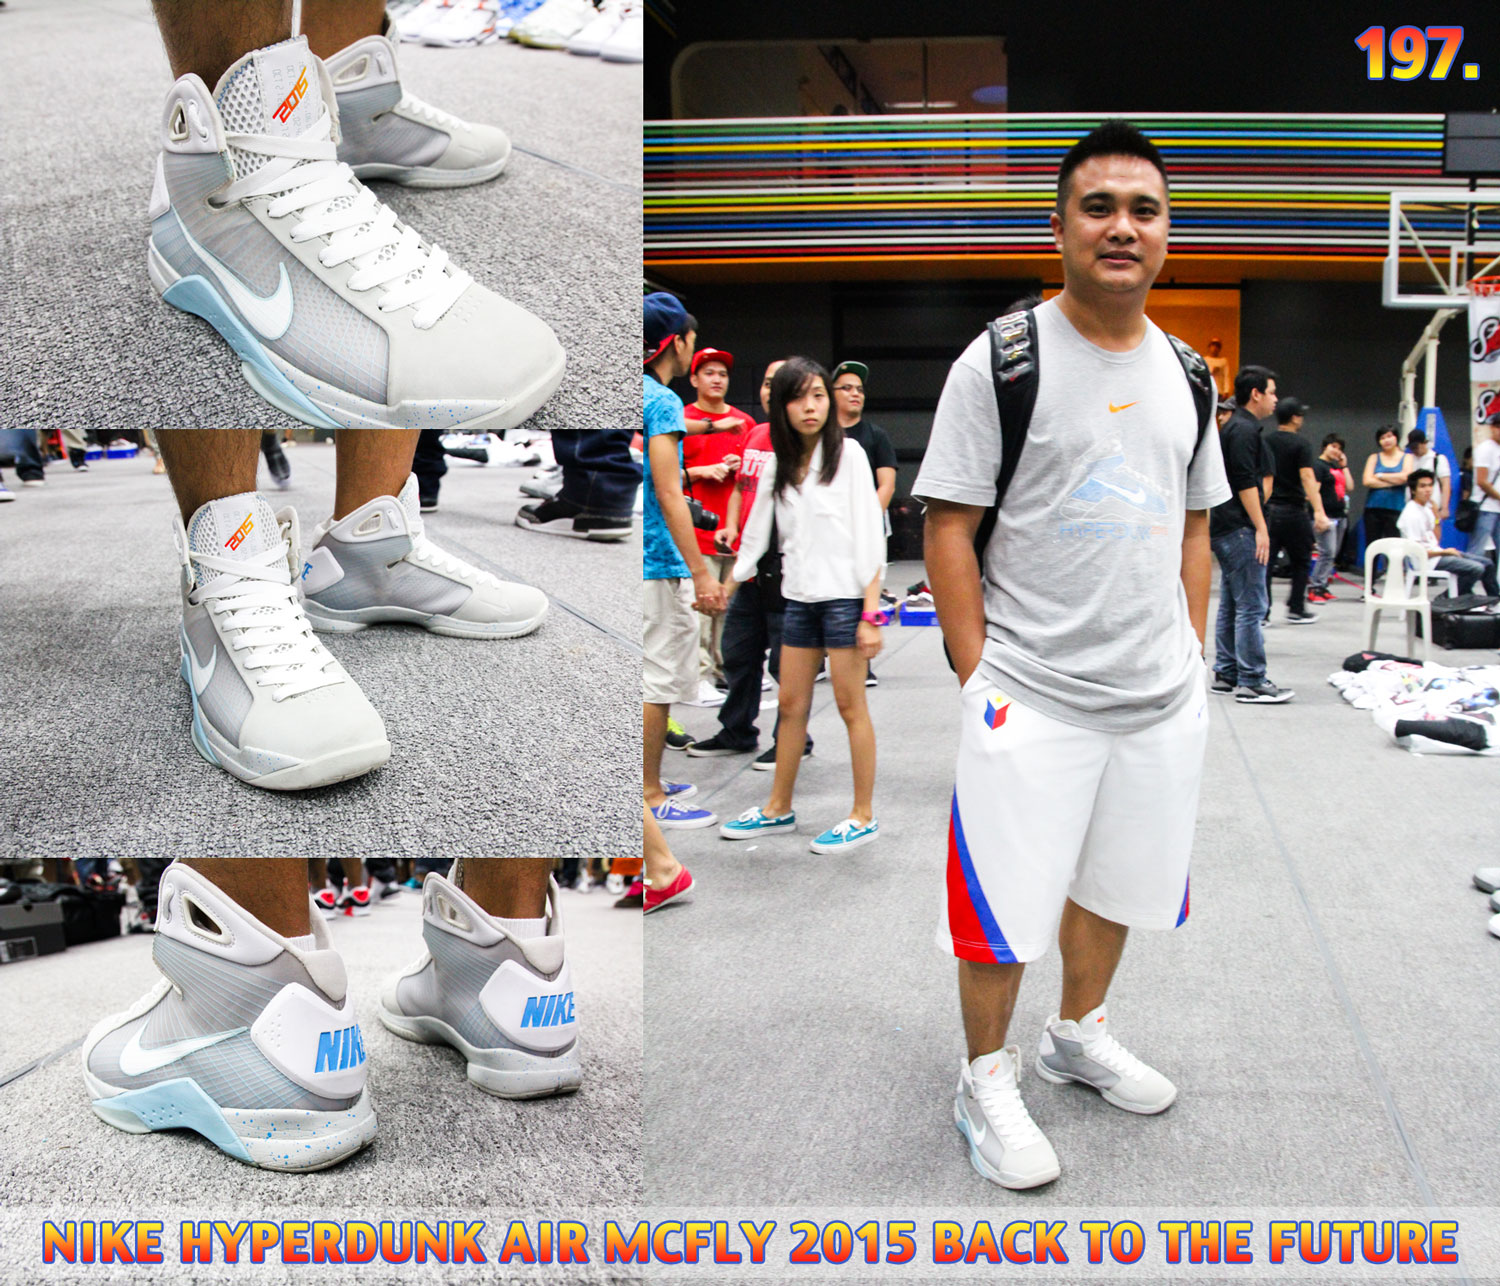 f6f51d9477f0 nike hyperdunk 2015 mcfly for sale